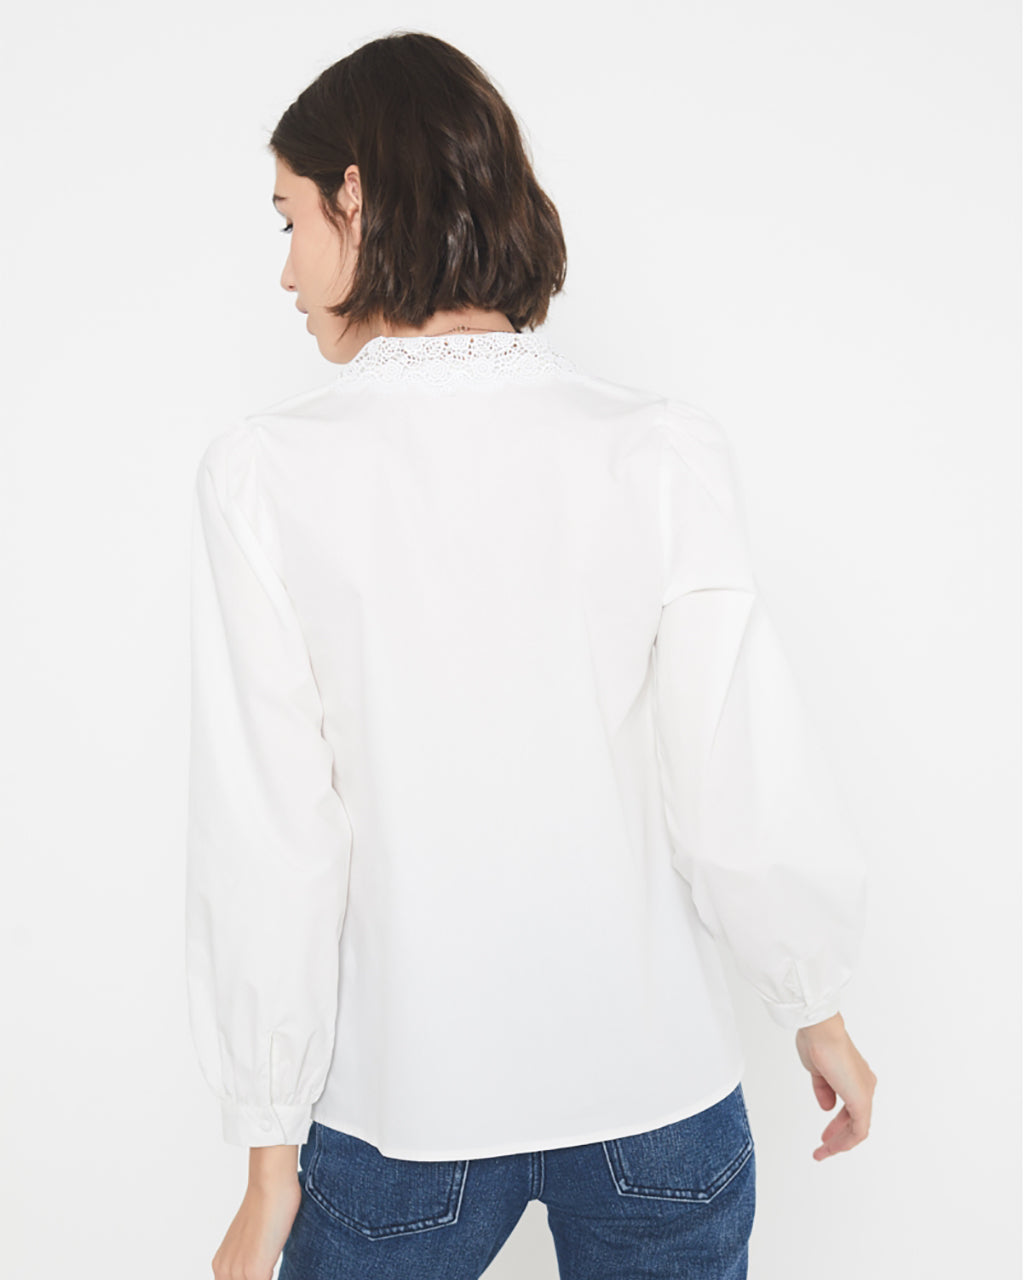 back view of model in long sleeved white blouse